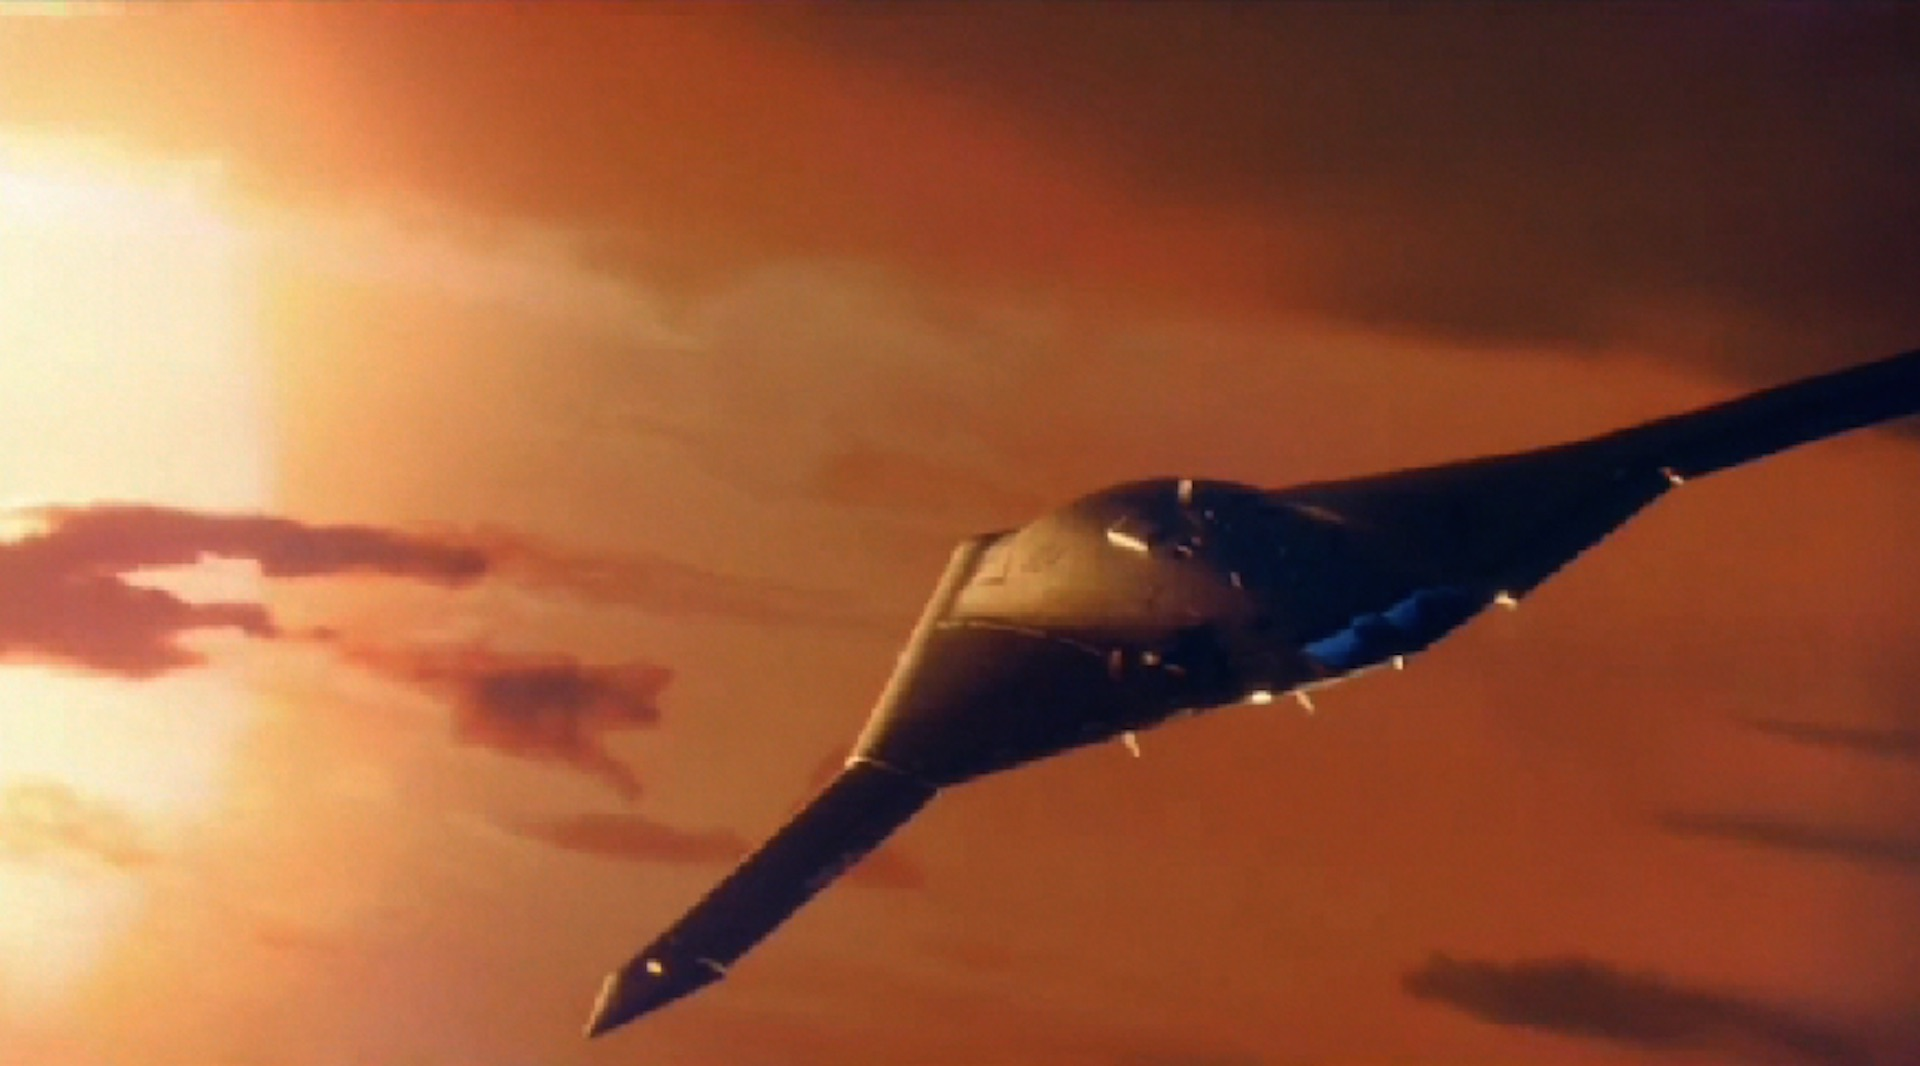 This futuristic fighter jet was just unveiled to America during the Super Bowl